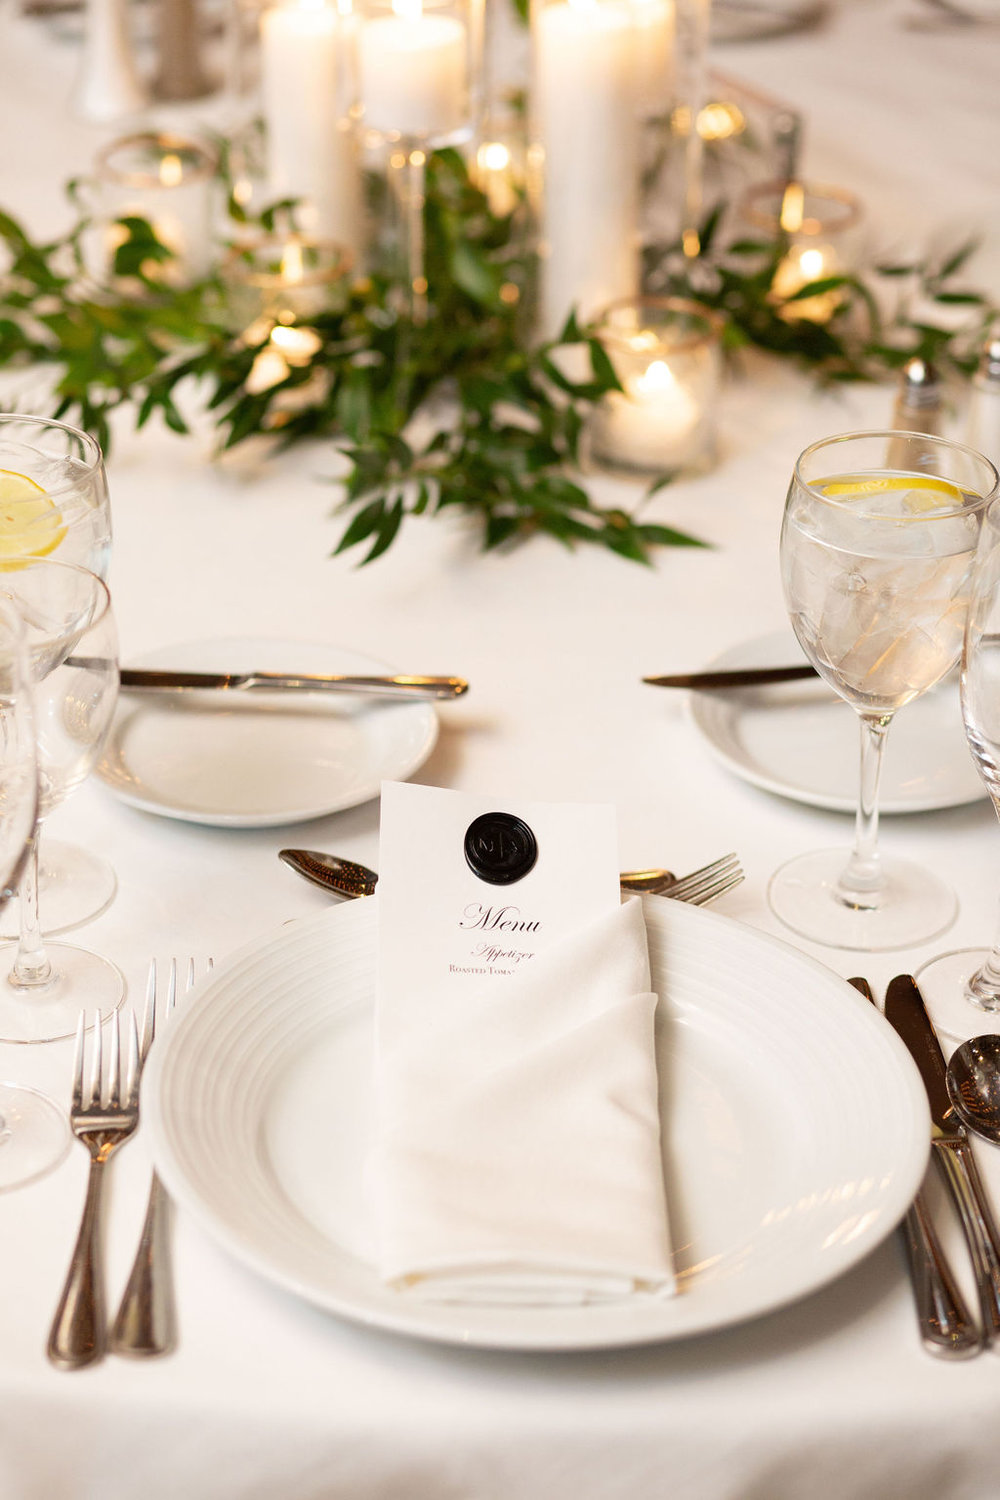 Heirloom Event Co. | Hyatt Lodge at McDonald's Campus